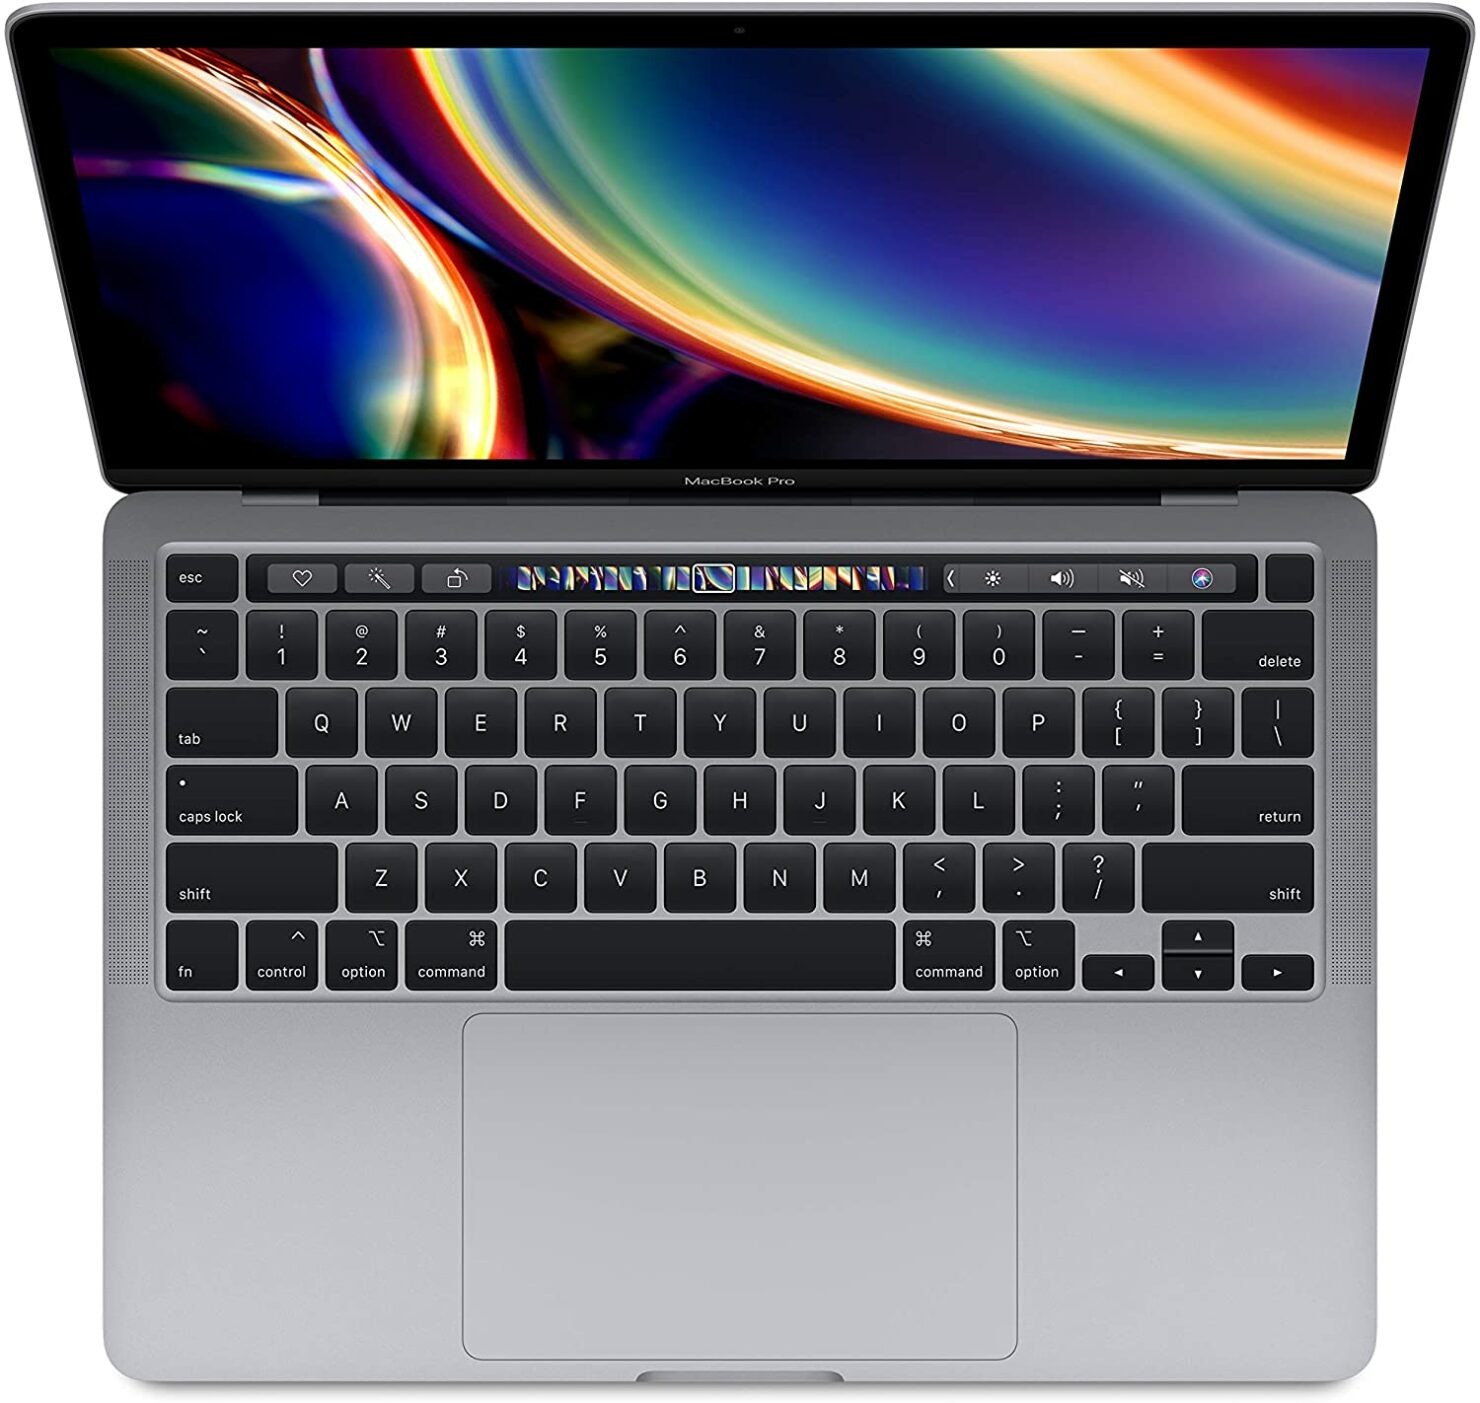 Get a 13-inch MacBook Pro With Quad-Core CPU, 512GB Storage, 16GB RAM for $200 Off in This Limited Time Deal